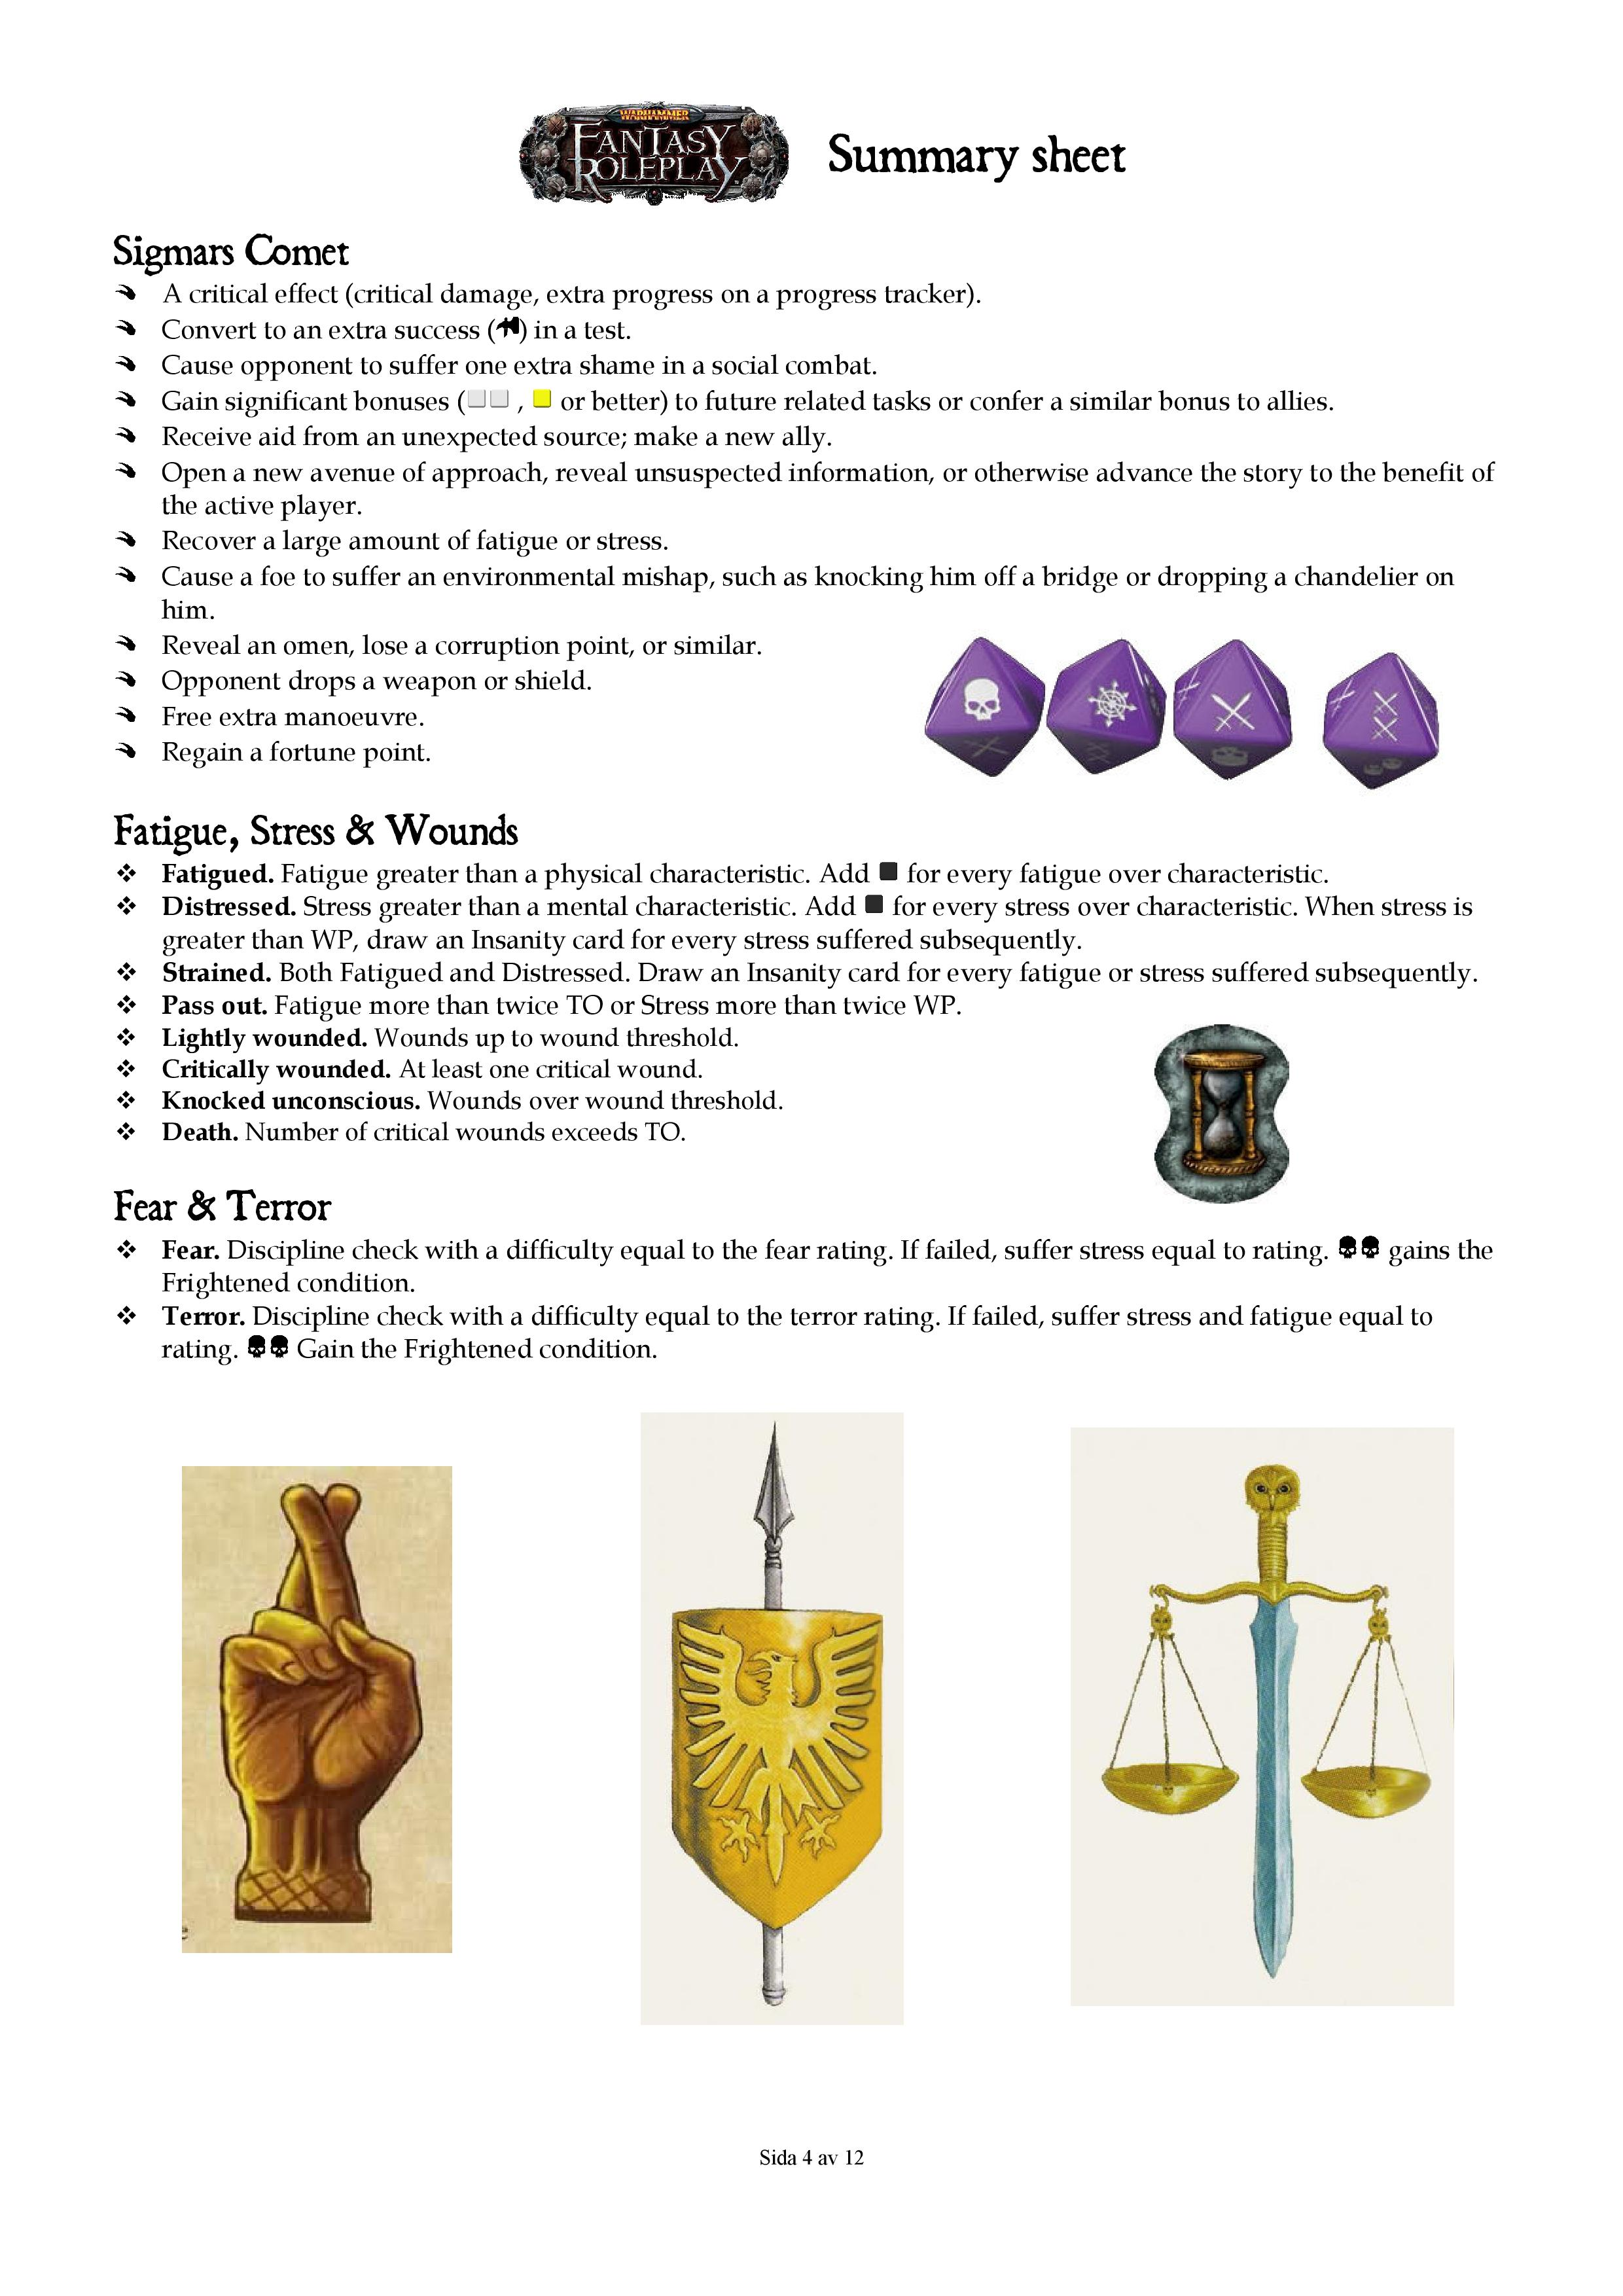 WFRP_3ed_Summary_Sheet_-_Players-page-004.jpg